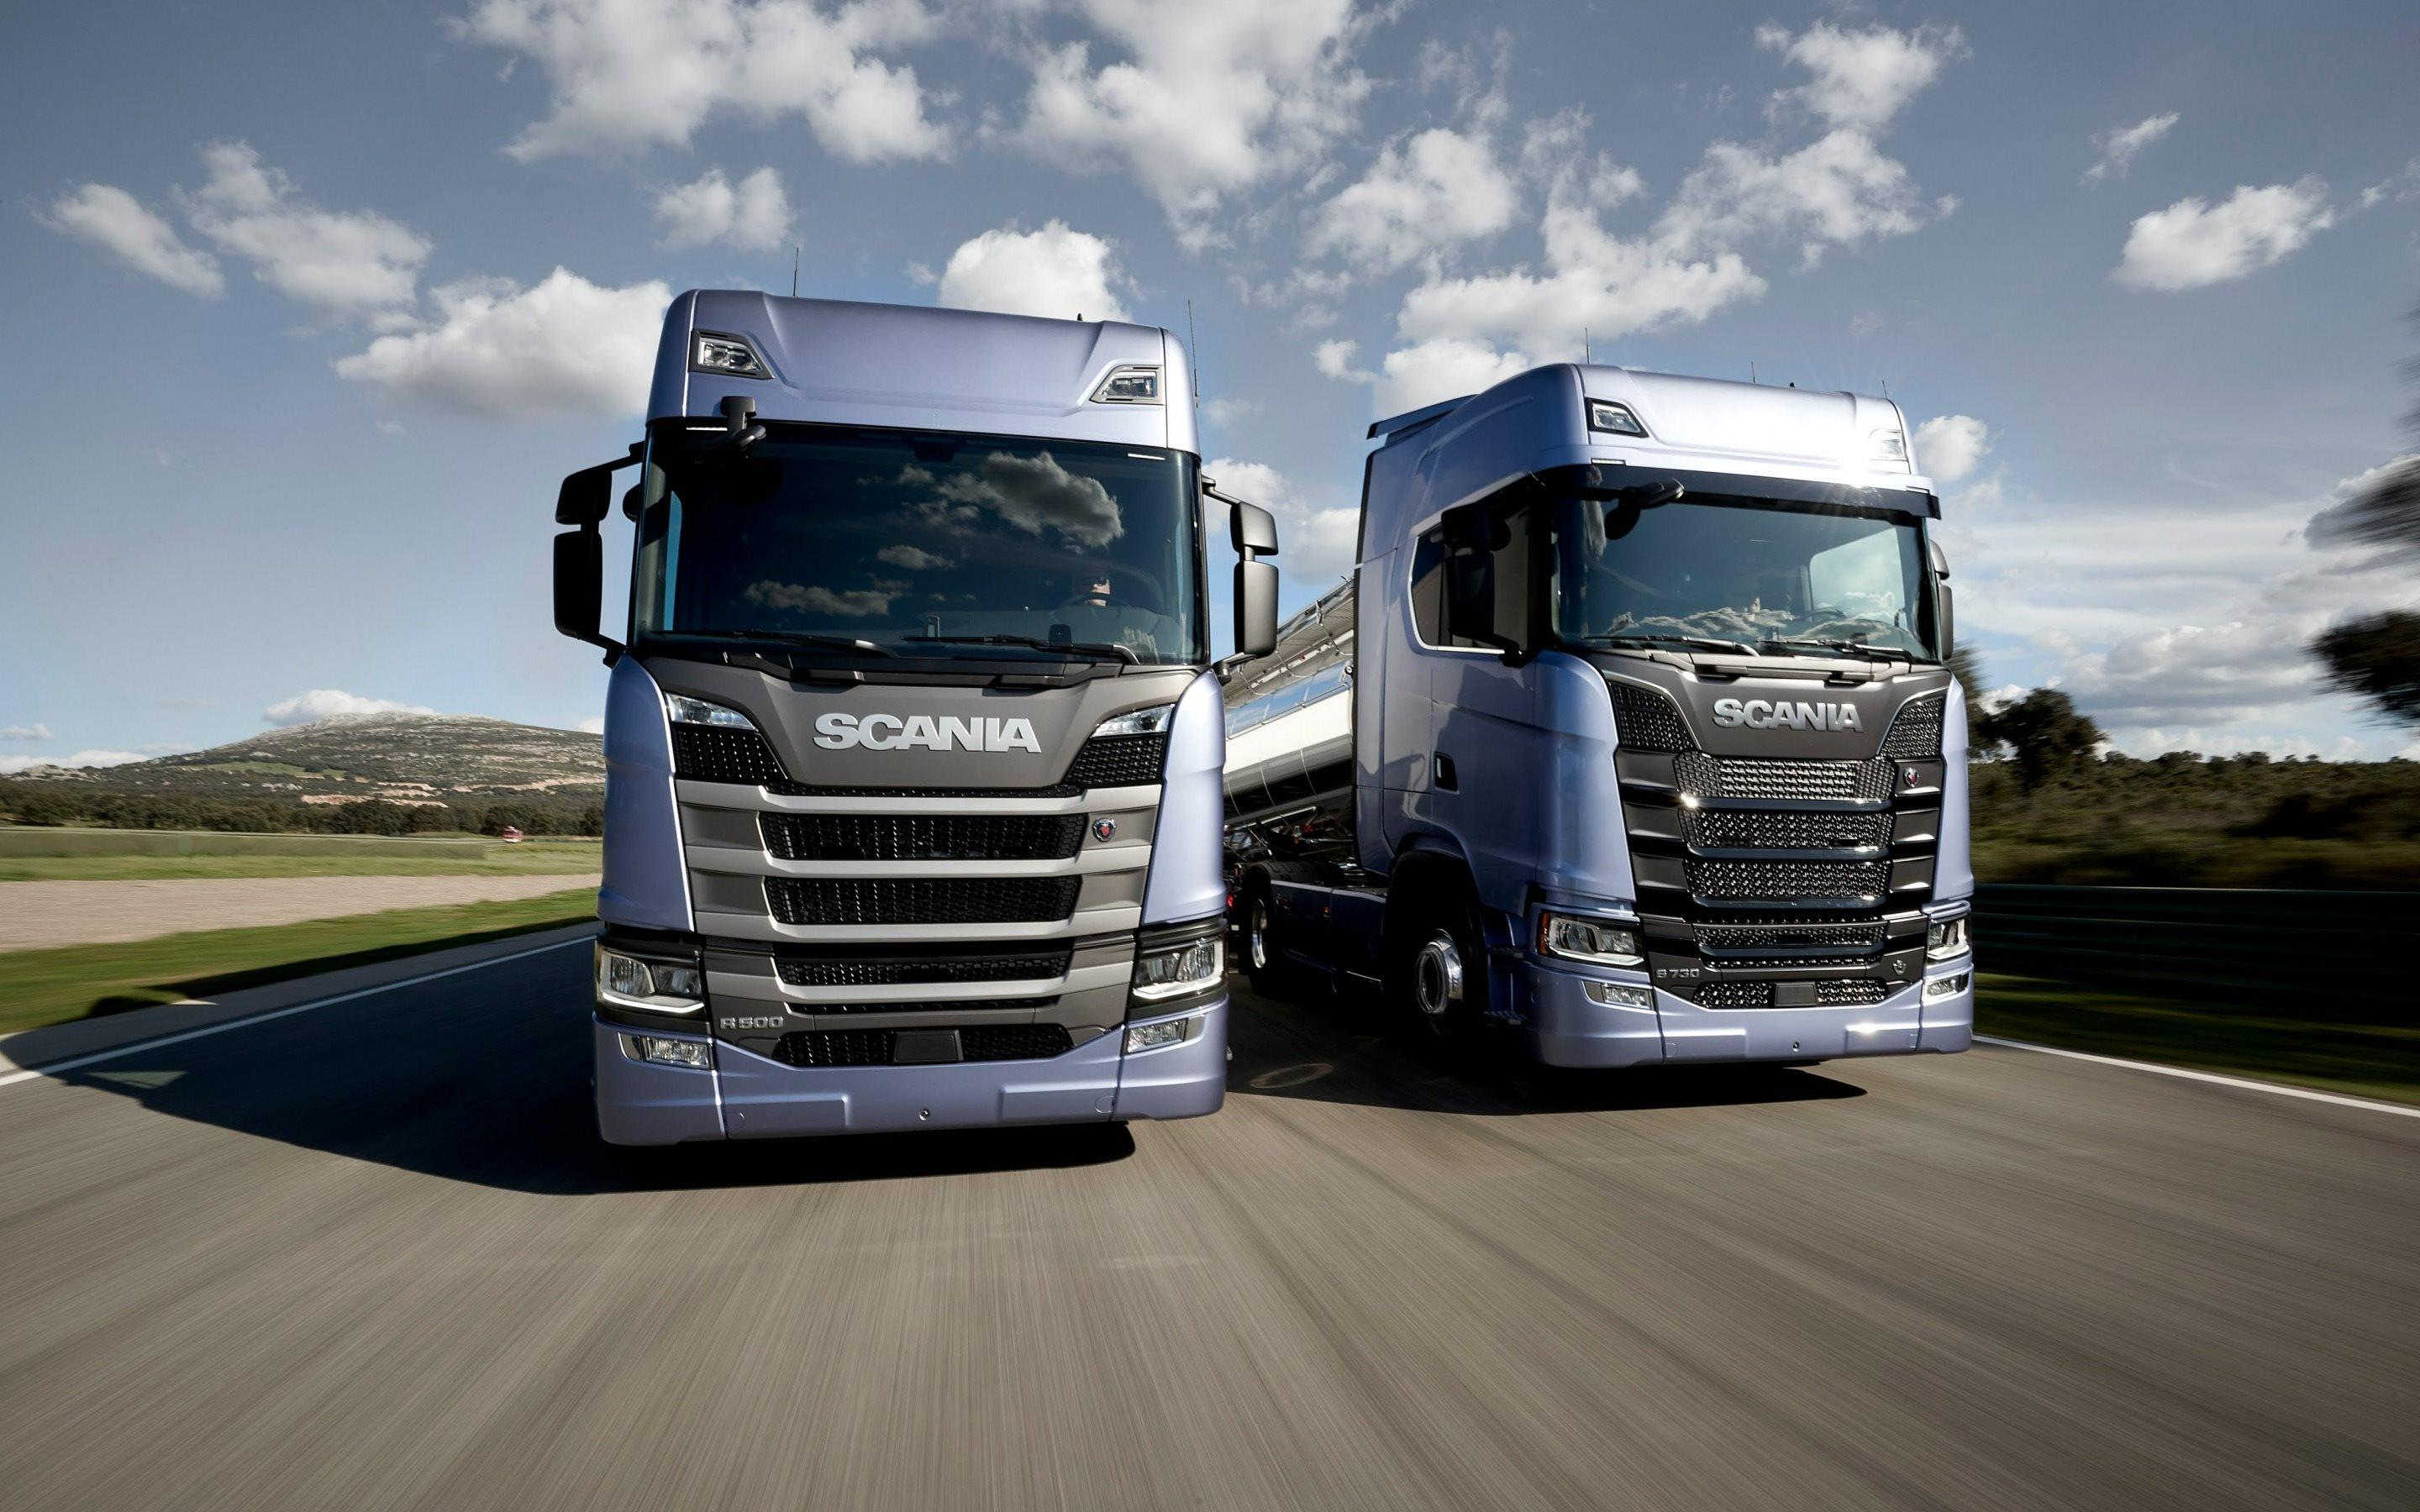 Scania S730 Wallpapers Wallpaper Cave Download truck scania live hd wallpaper